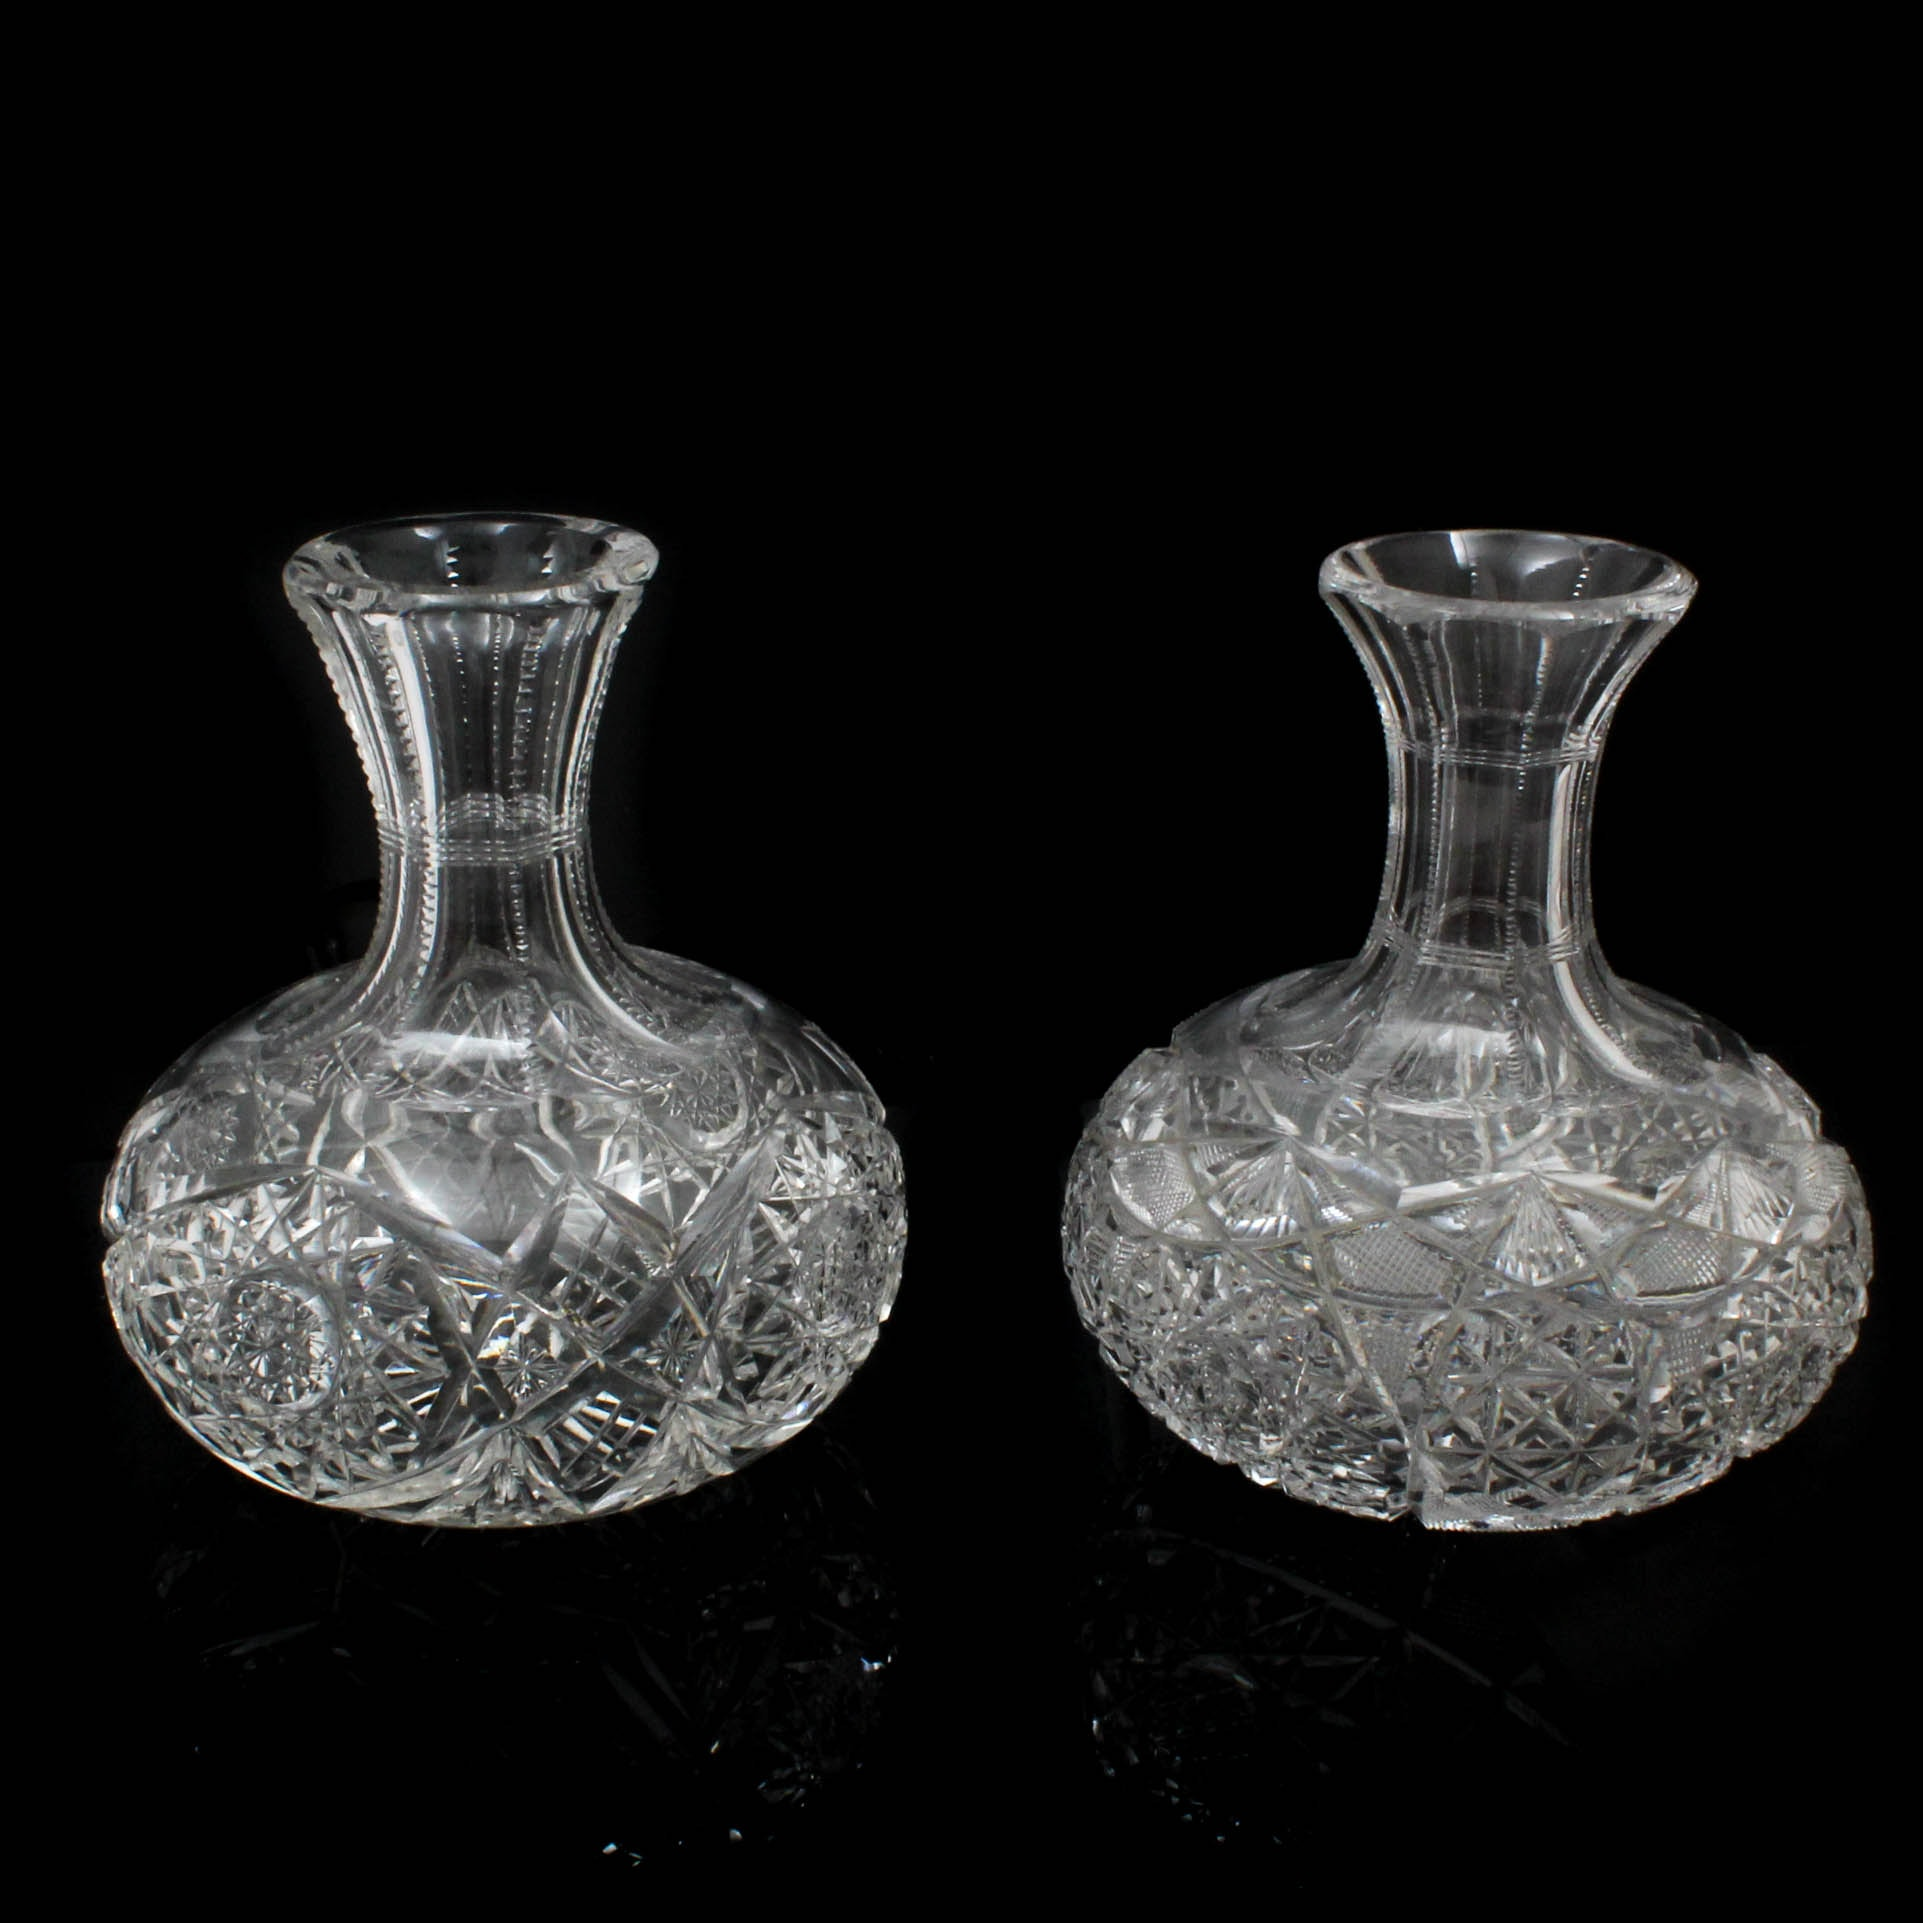 Two American Brilliant Period Cut Glass Carafes